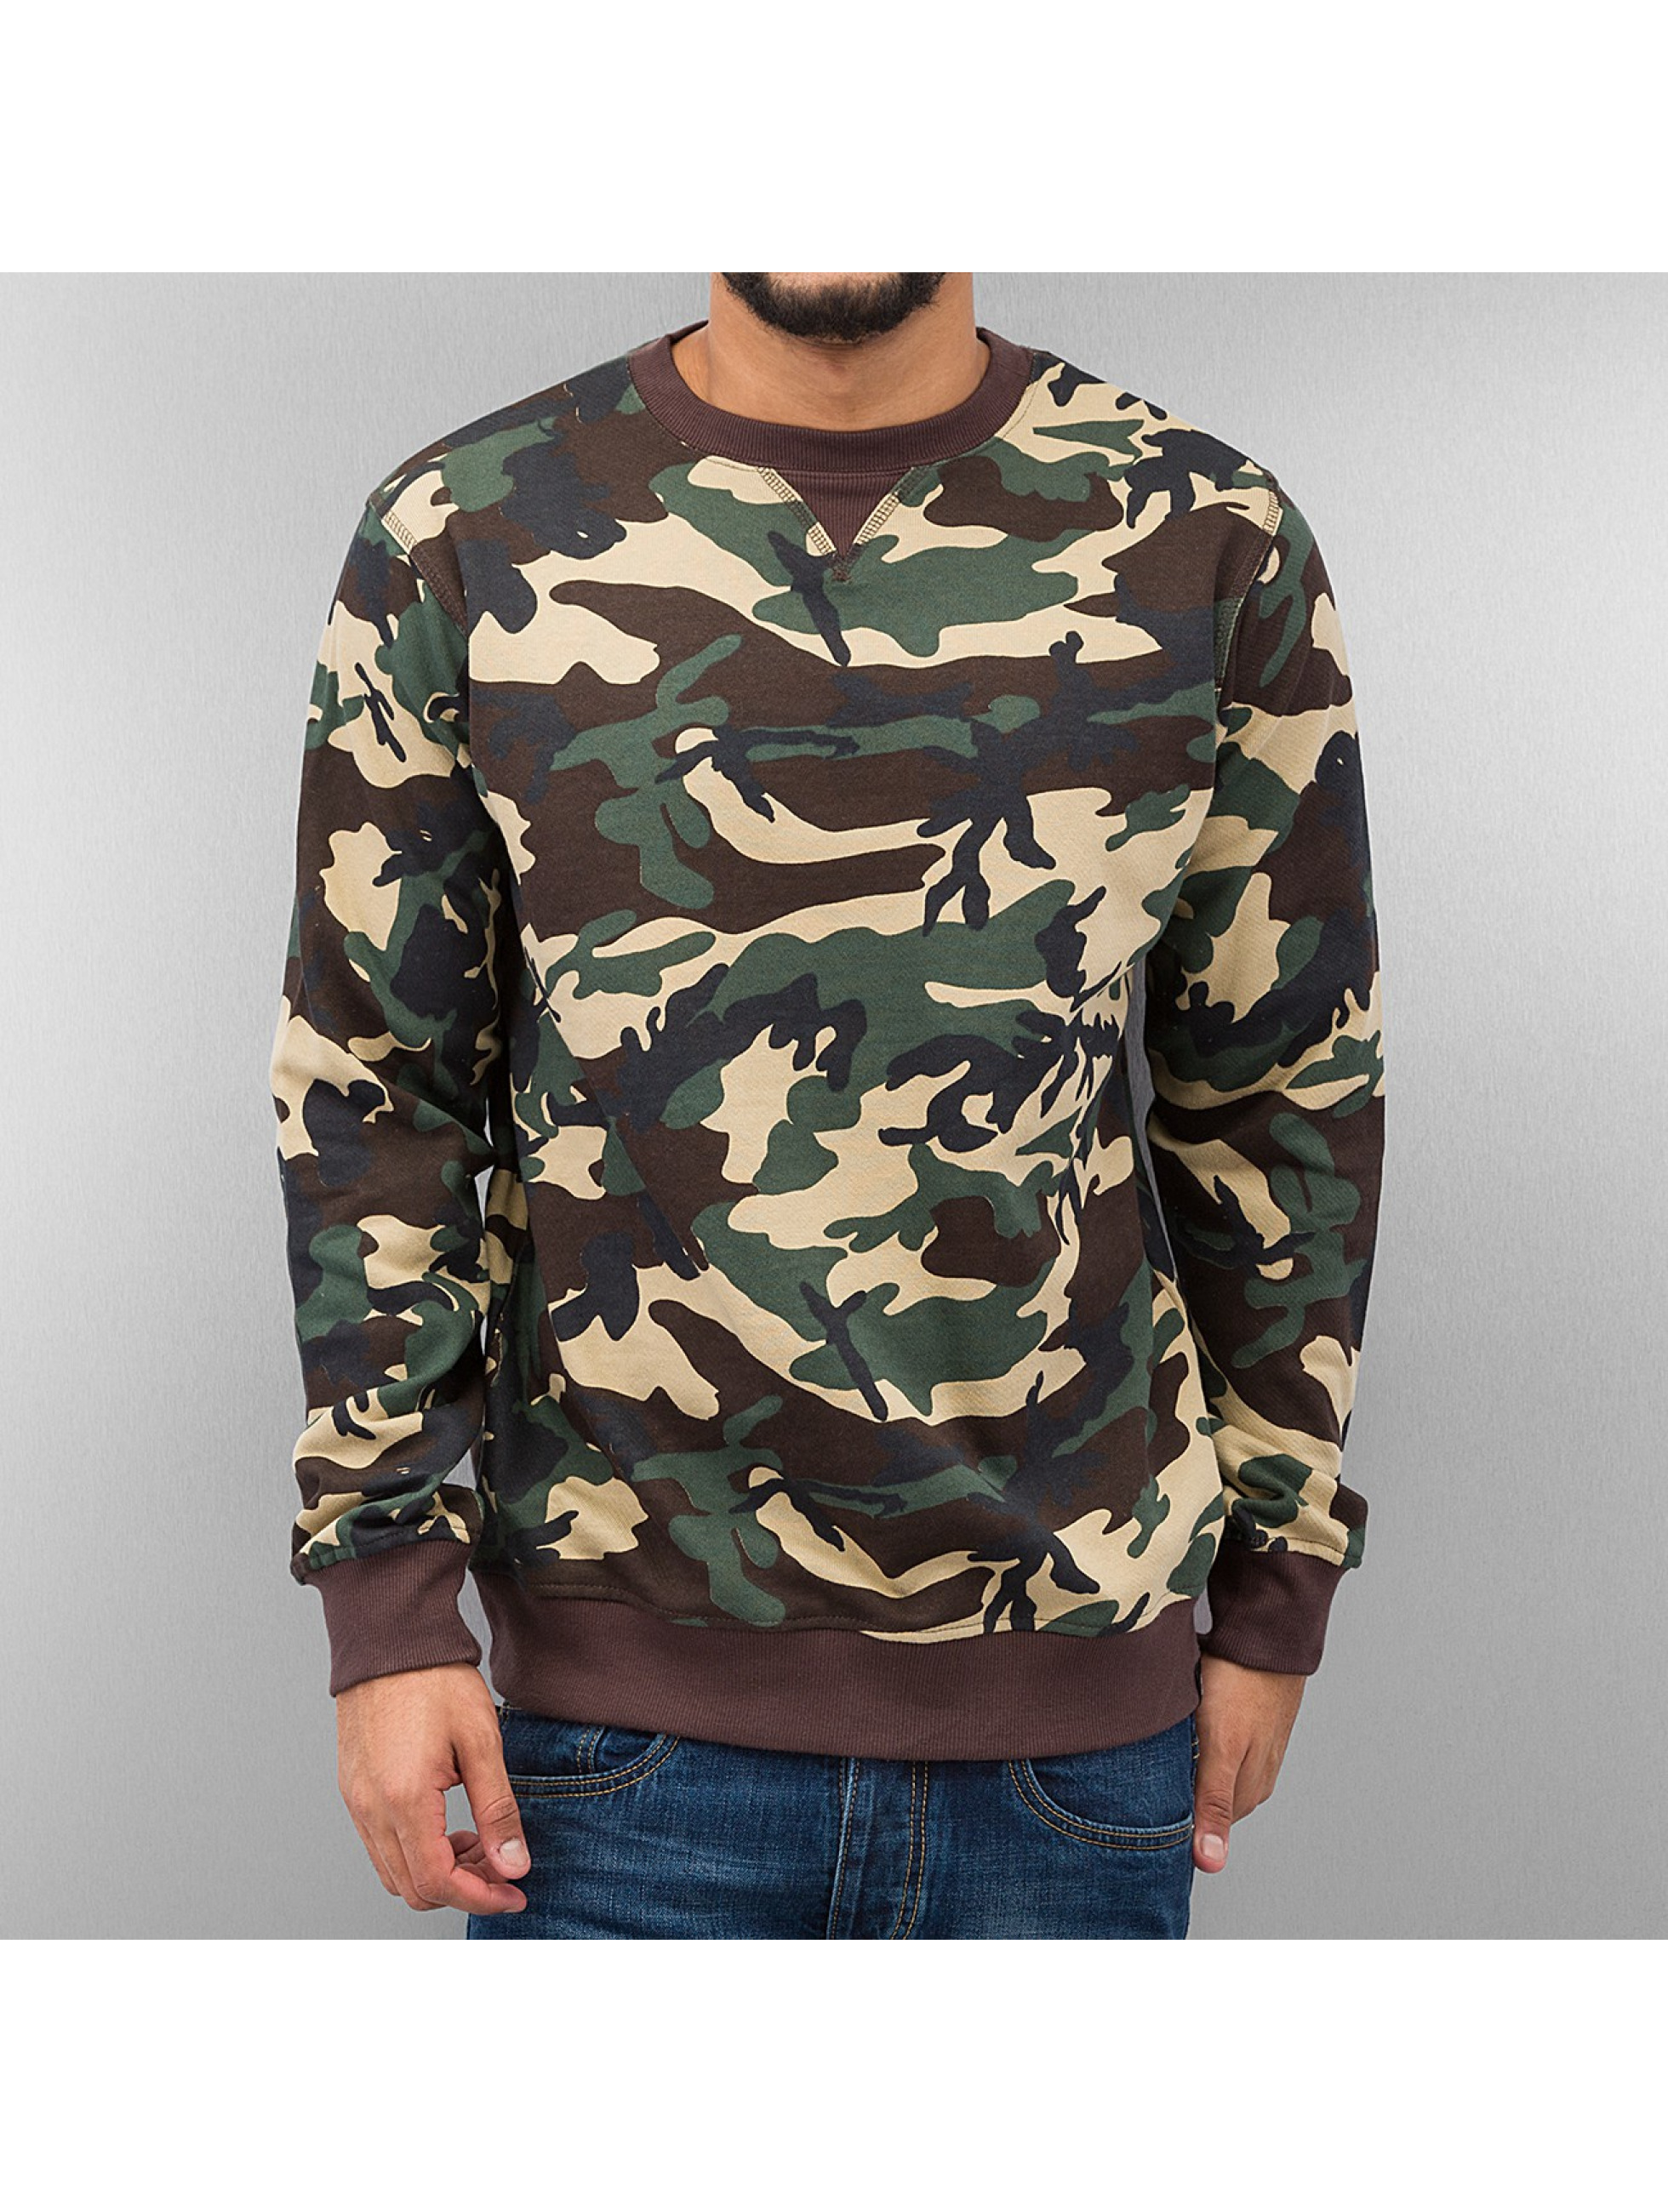 dickies herren pullover washington in camouflage 164165. Black Bedroom Furniture Sets. Home Design Ideas